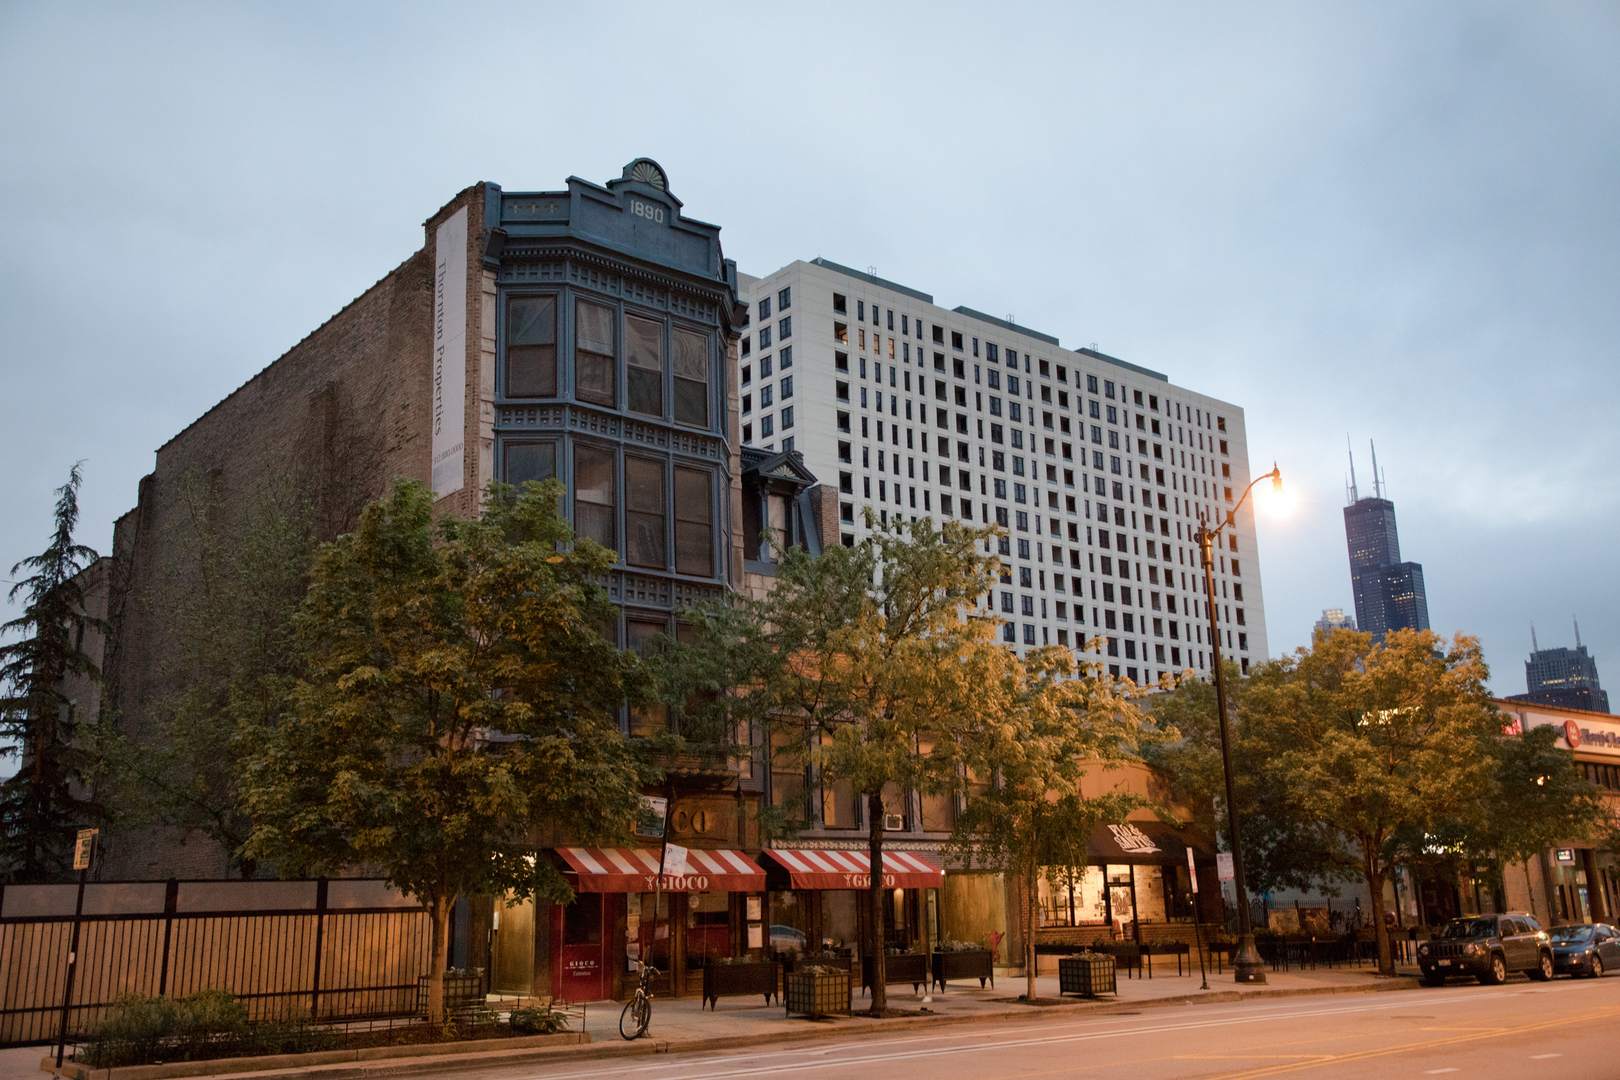 1312 SOUTH WABASH AVENUE #11, CHICAGO, IL 60605